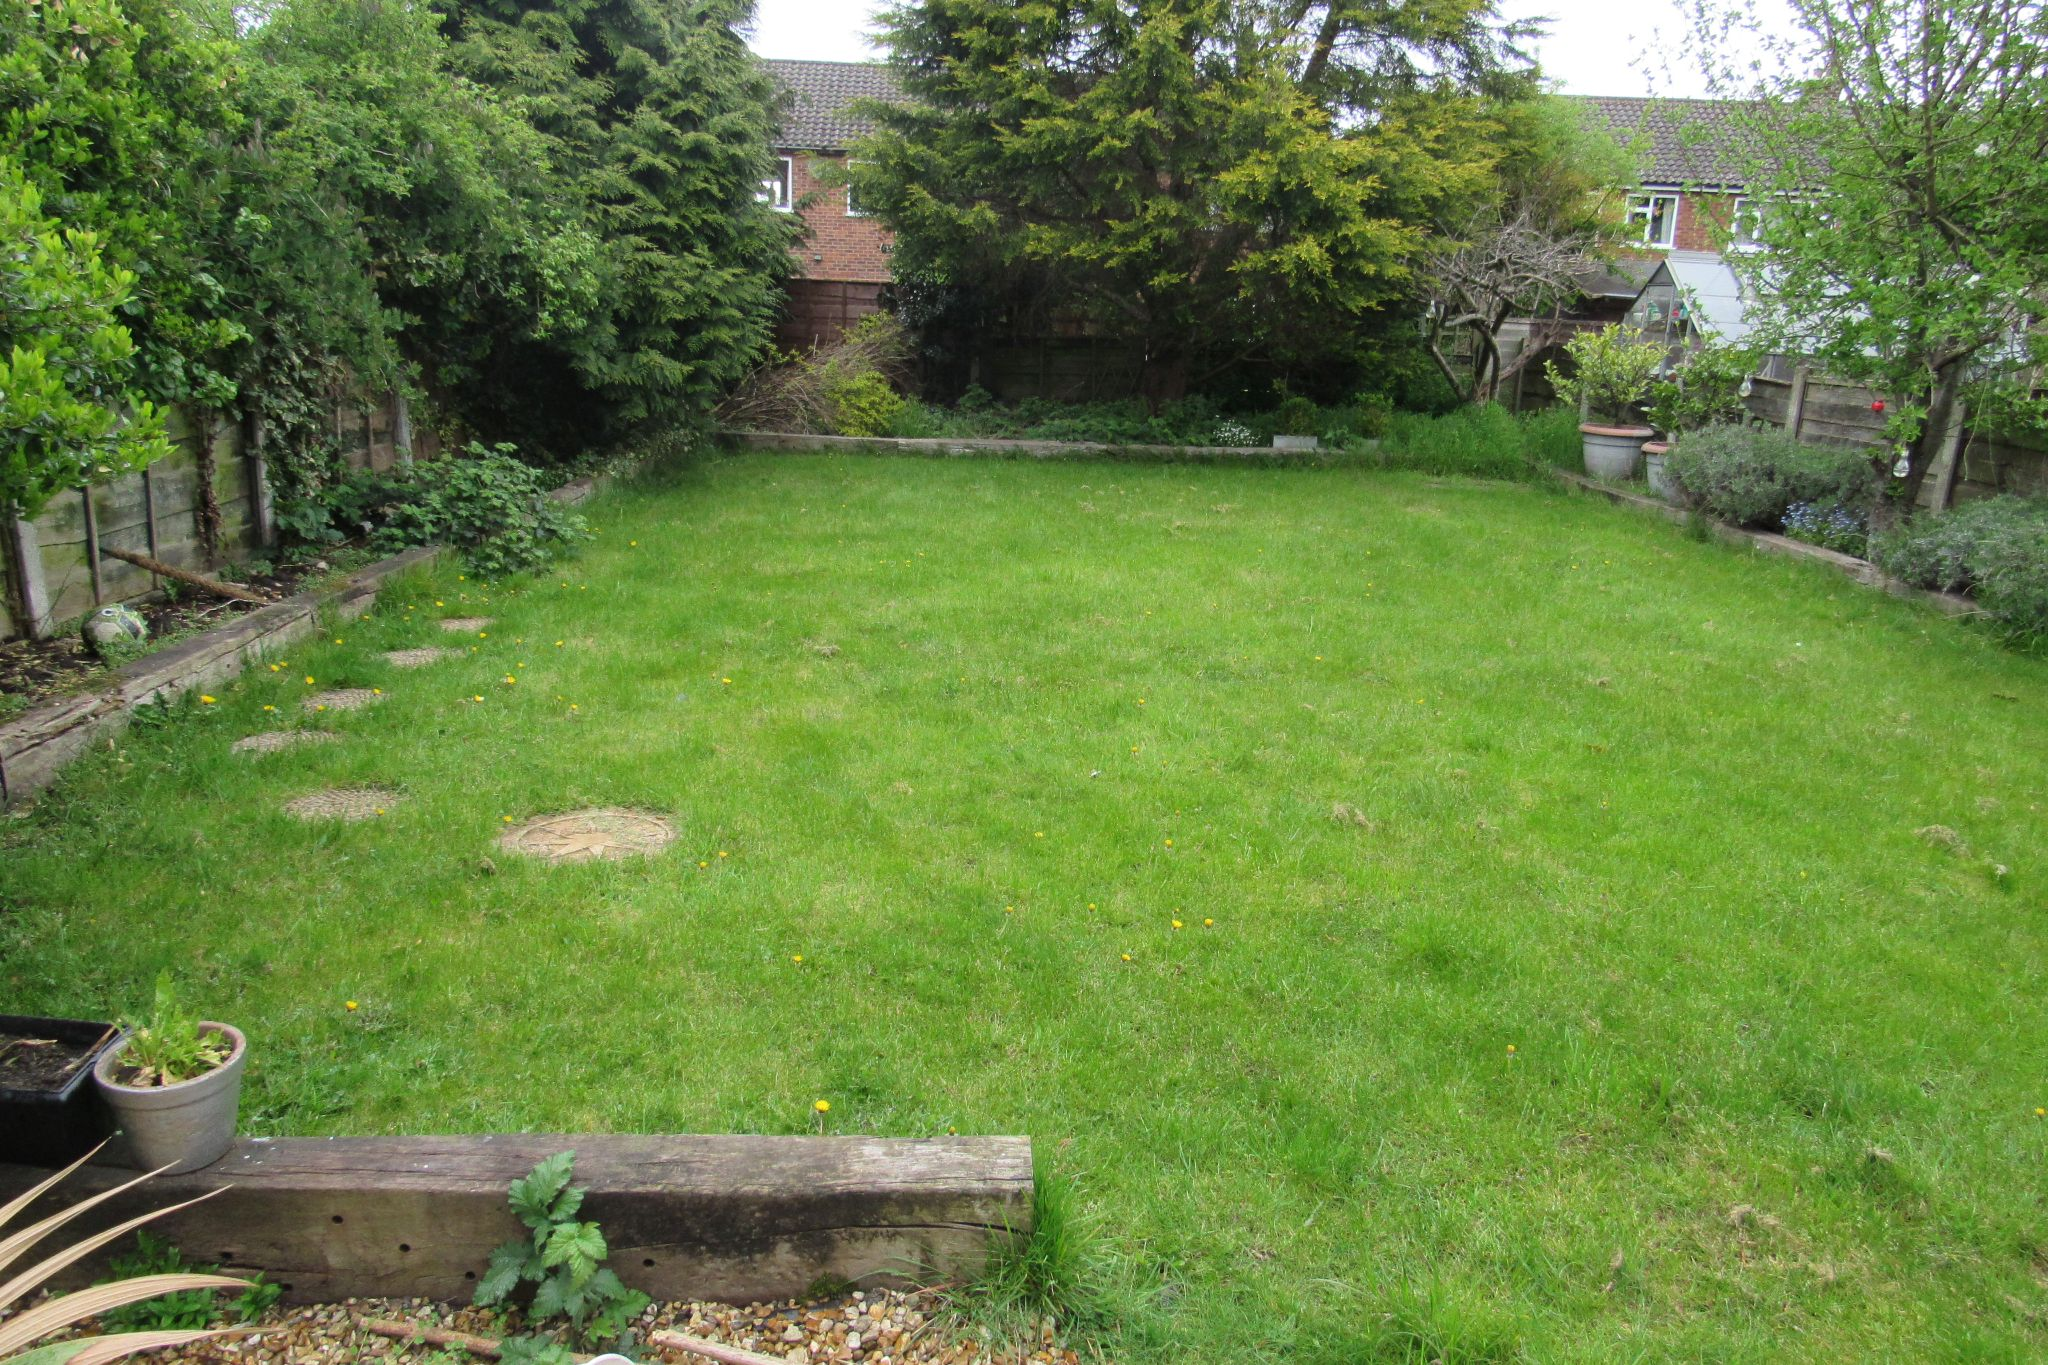 3 bedroom detached house For Sale in Manchester - Photograph 8.